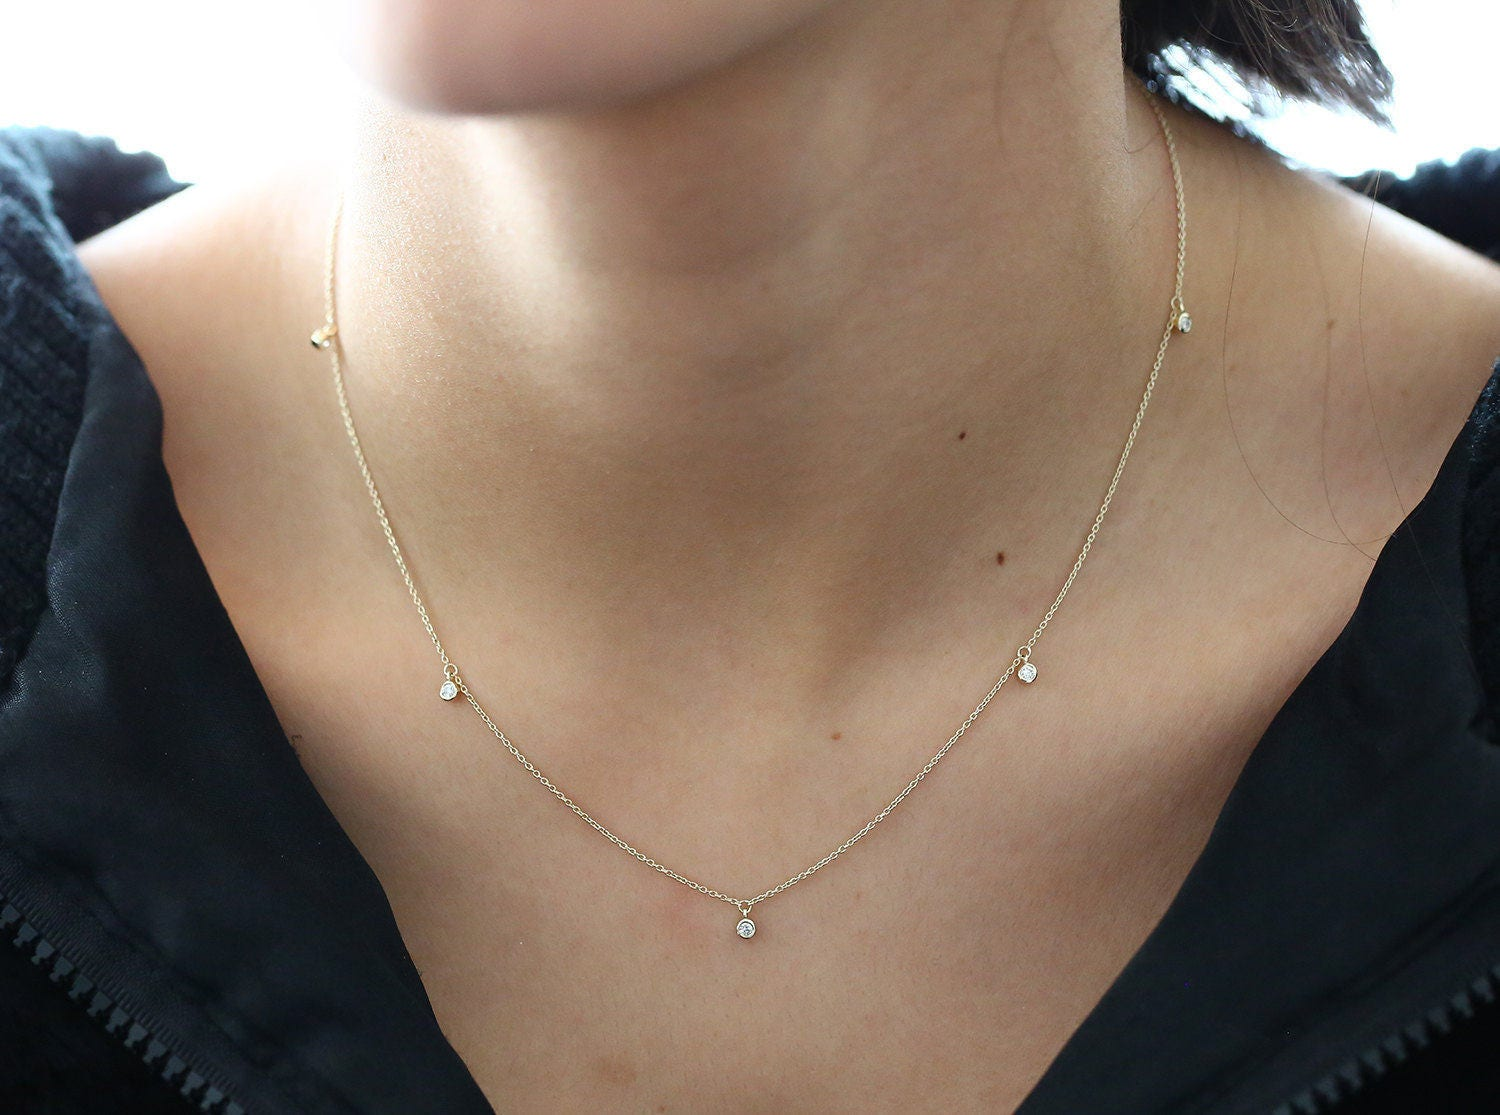 Solitaire Necklace/ Diamond Solitaire Necklace/ 14k Gold 5 Diamond Dangle Necklace/ Dainty Diamond Dangling Necklace/  dangling choker,